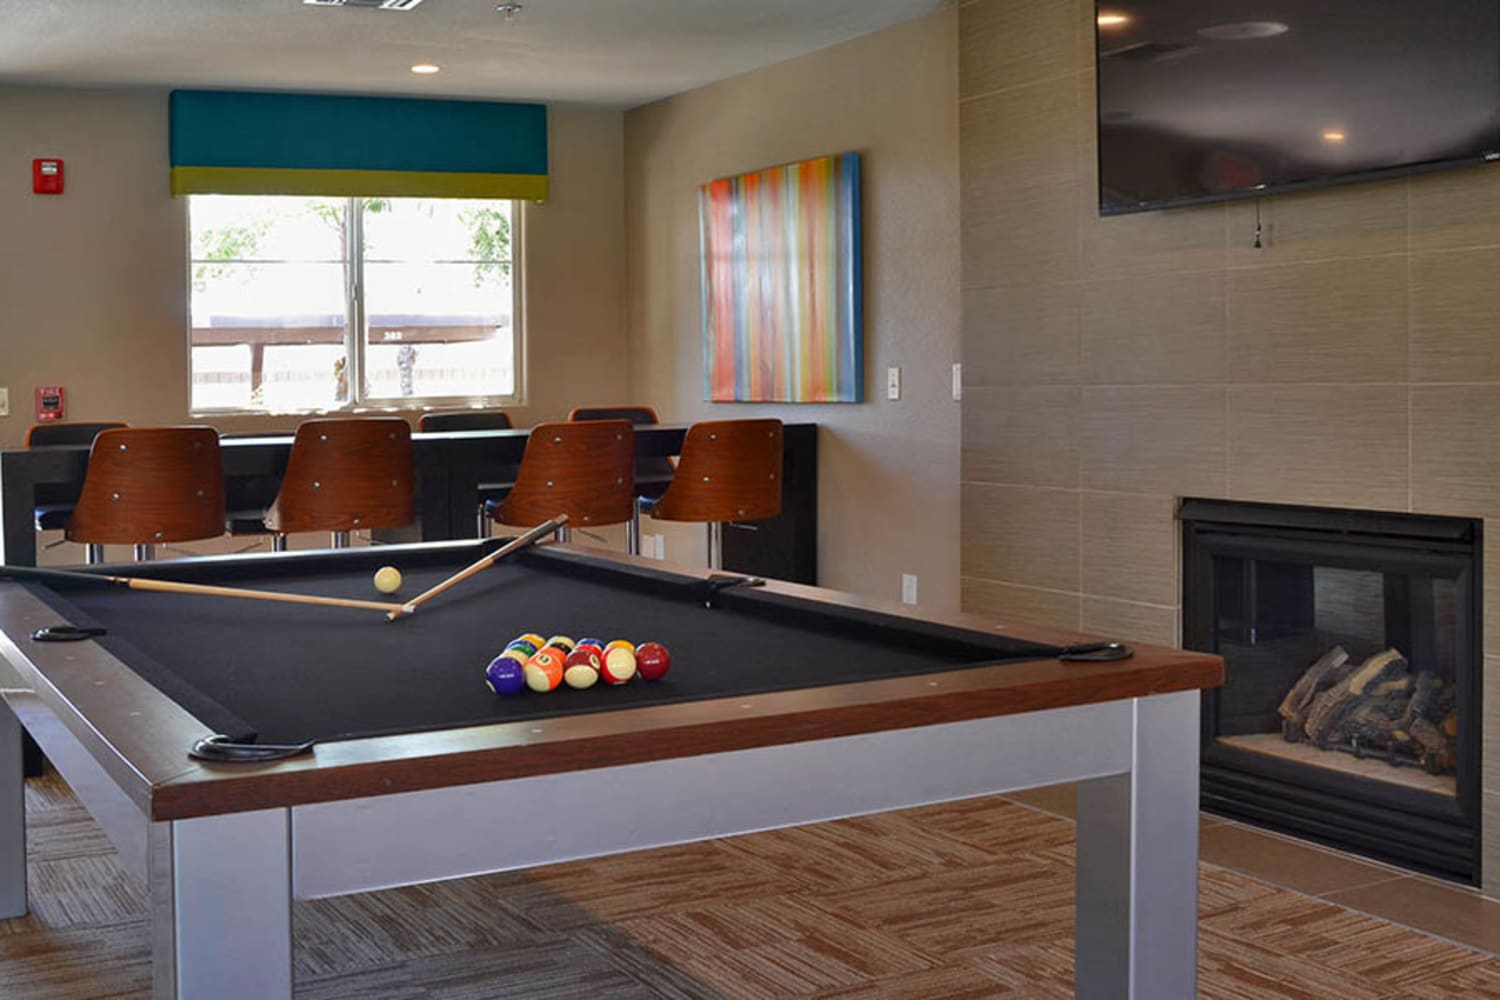 Billiards table at 2150 Arizona Ave South in Chandler, Arizona